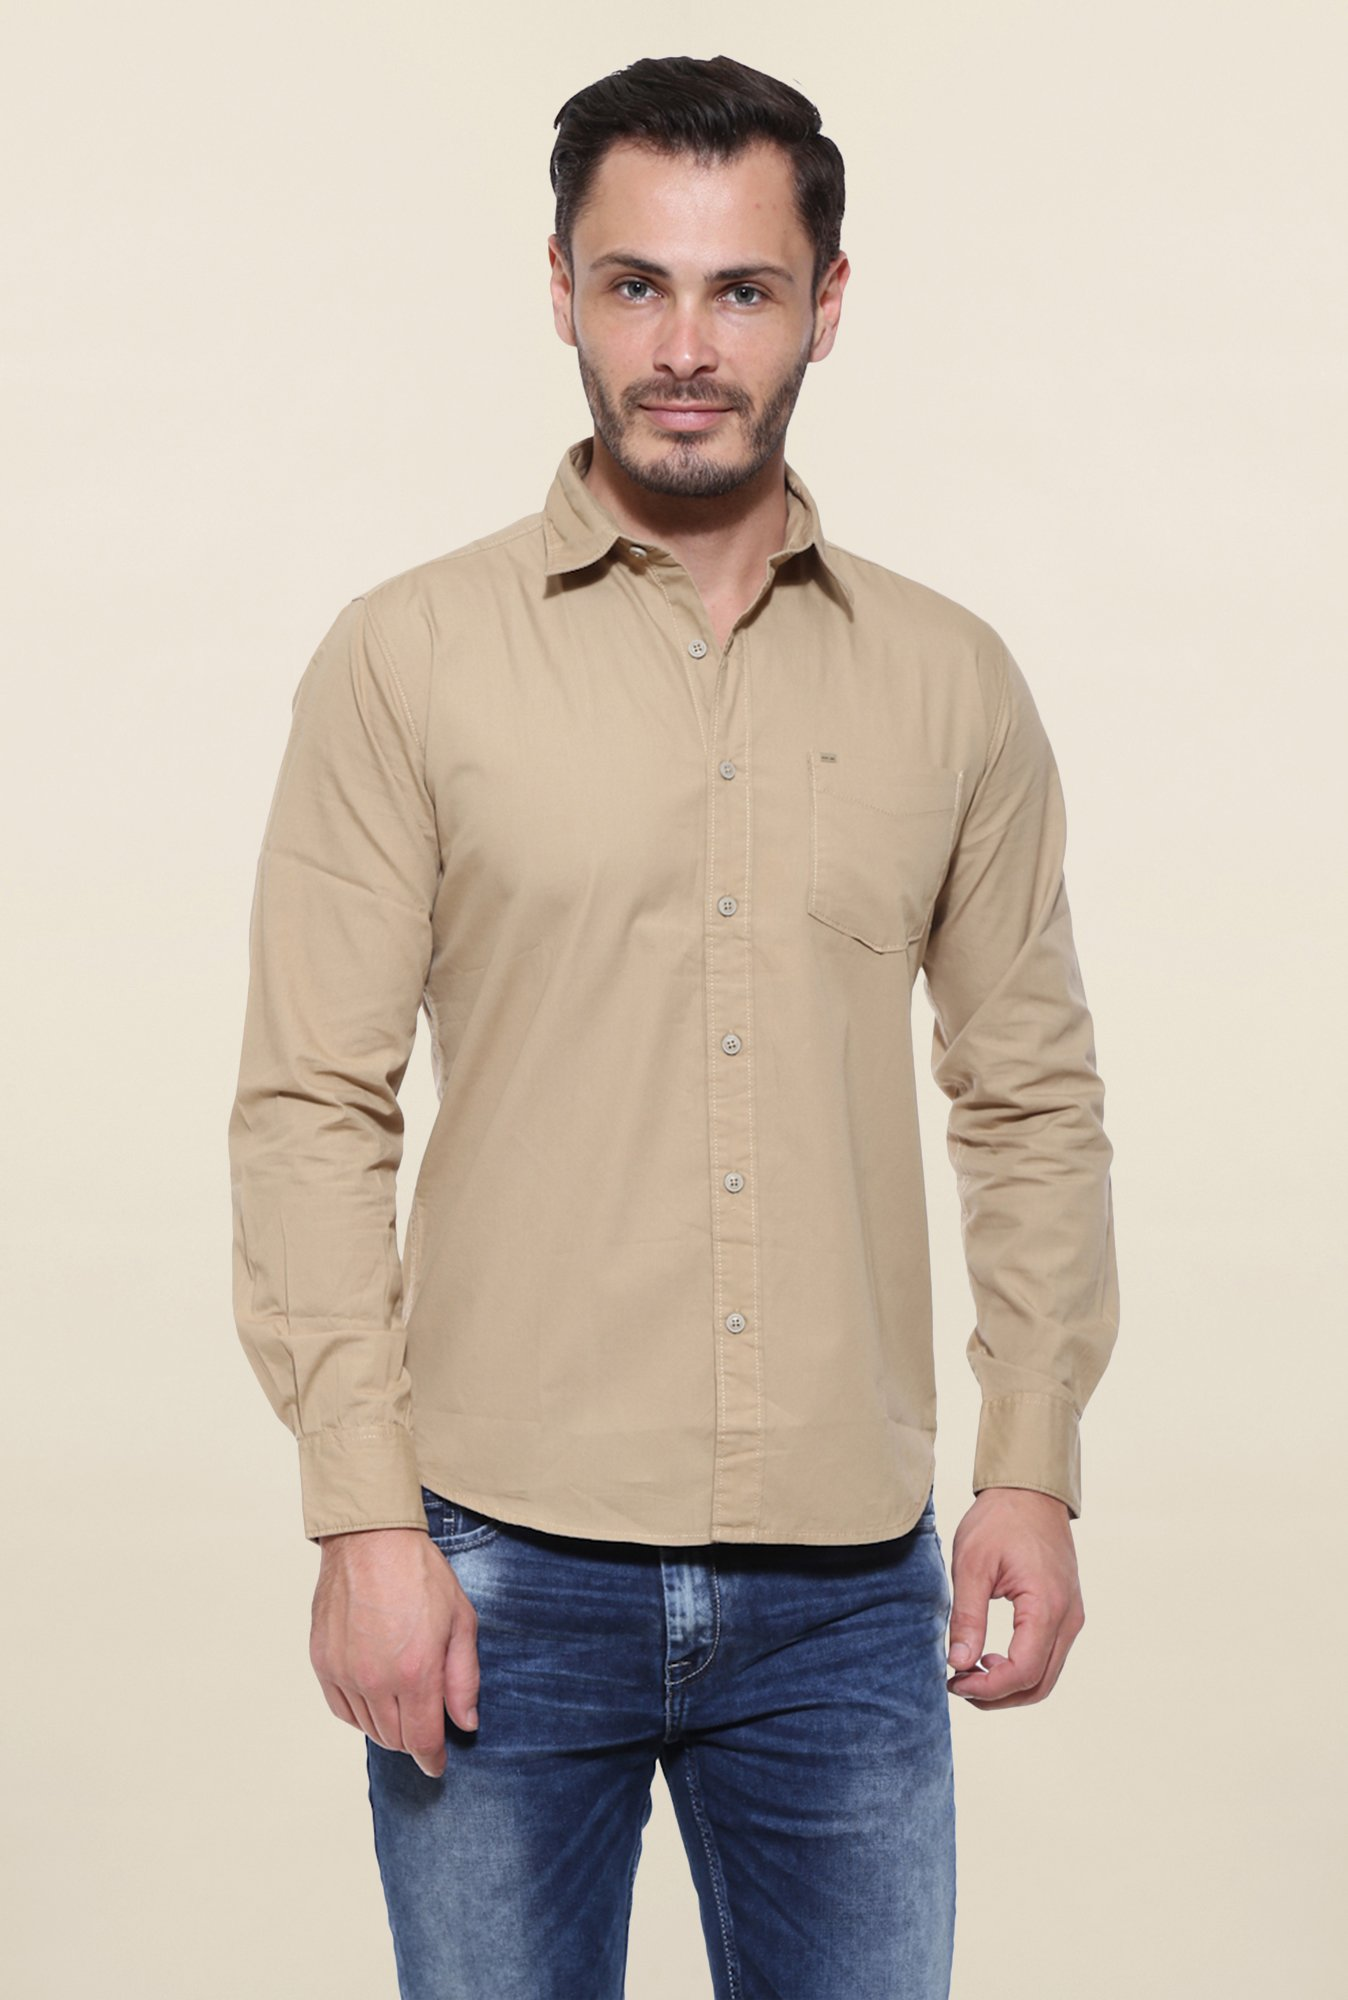 Pepe Jeans Beige Solid Casual Shirt